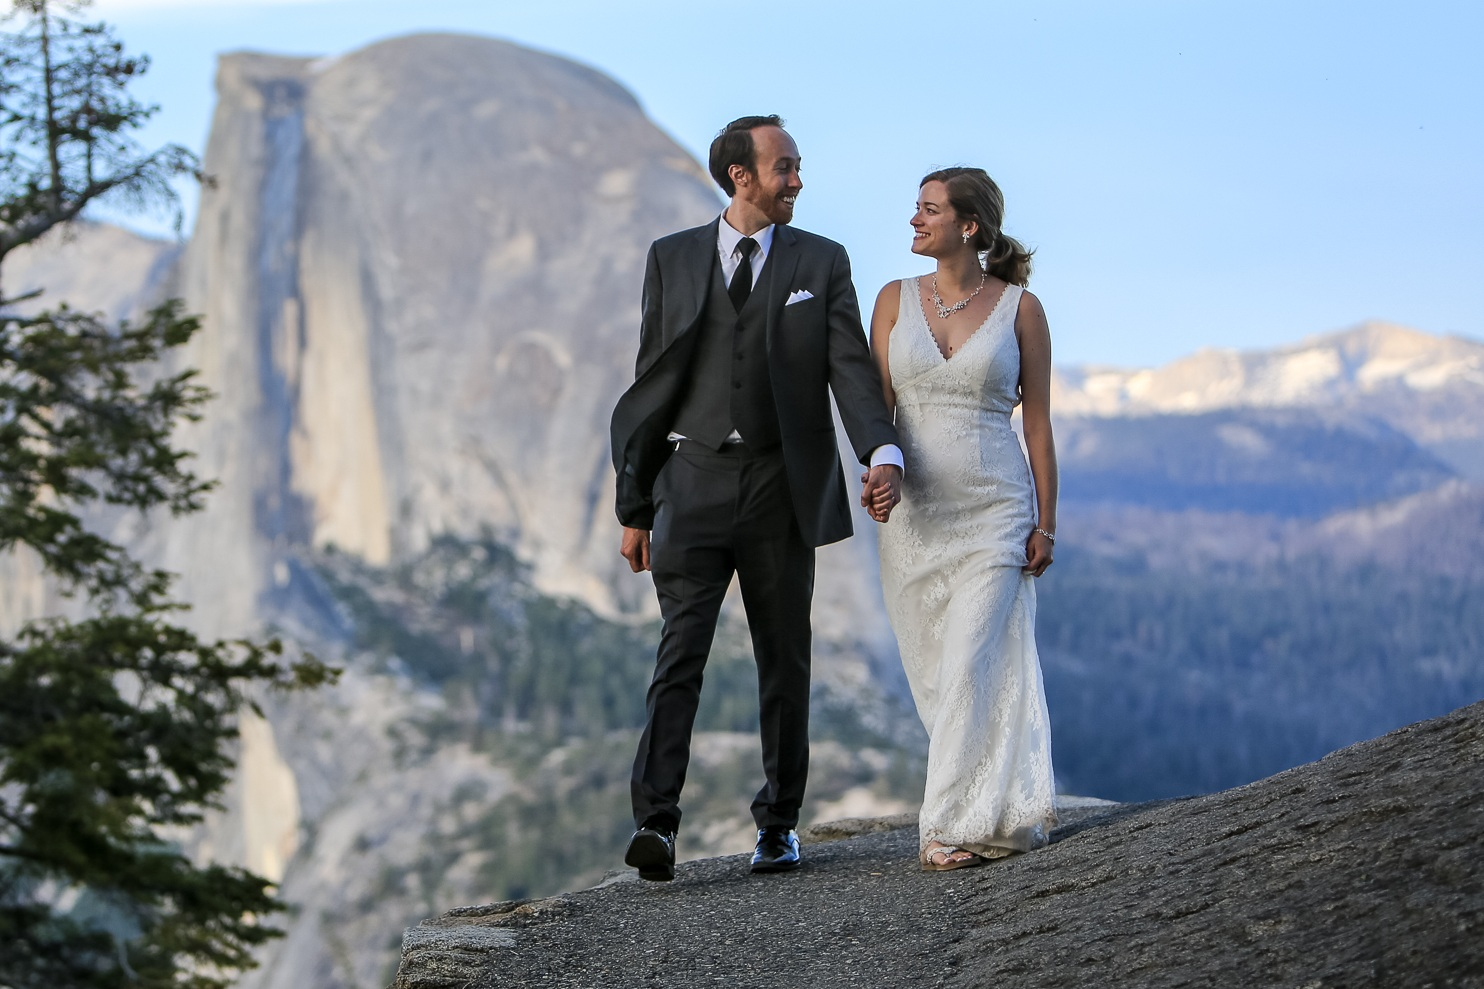 Photo of John and Kaitlyn taken during their photoshoot after their outdoor wedding in yosemite valley